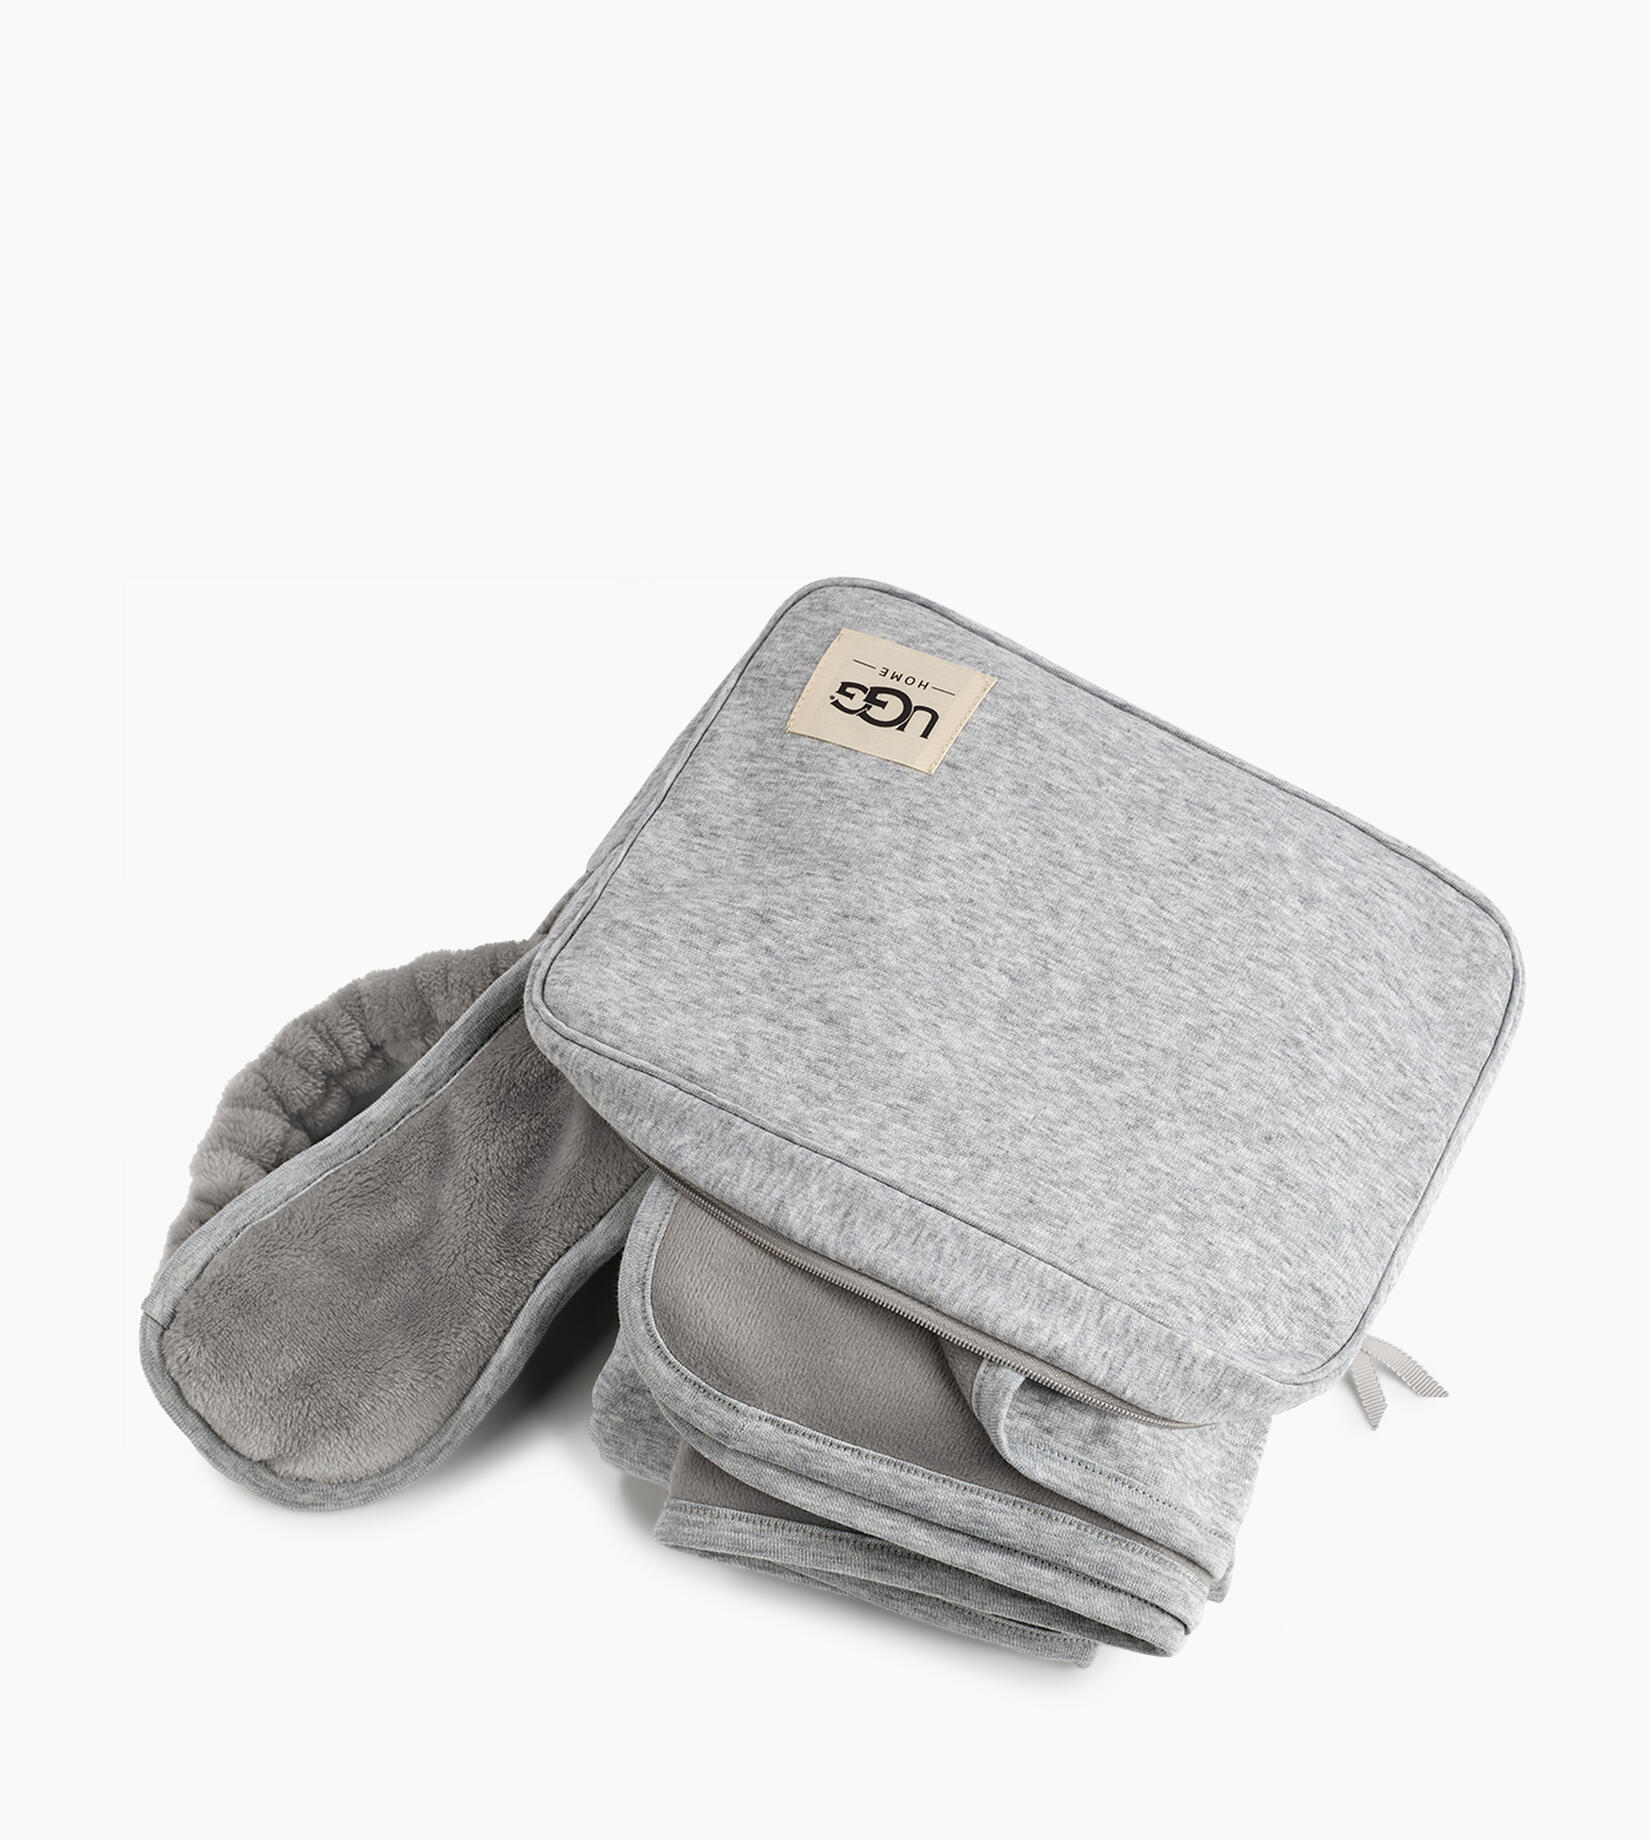 Duffield Soft Pouch Travel Set